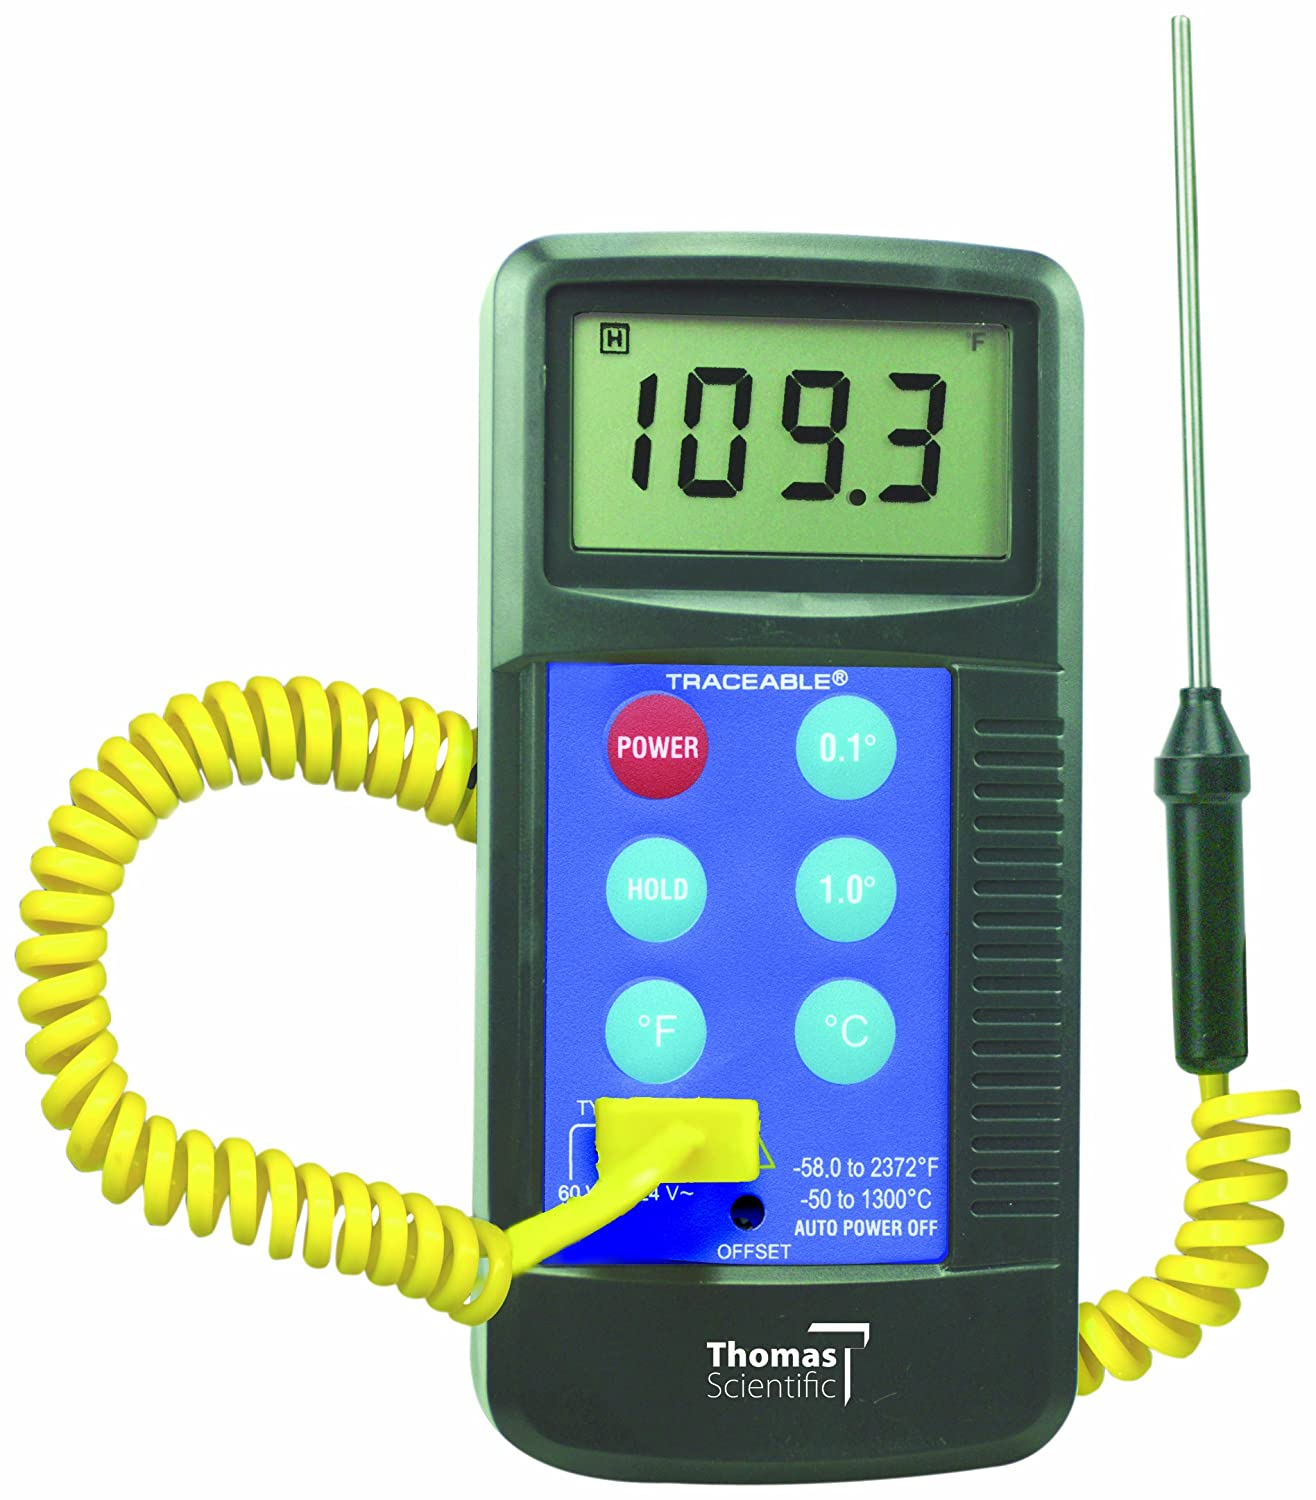 Thomas Traceable Workhorse Thermometer, Type K Thermocouple, -58 to 2372 Degree F, -50 to 1300 Degree C, Probe Range (Supplied with Unit) -45 to 230 Degree C, Accepts All Type K Probes Thomas Scientific 4425